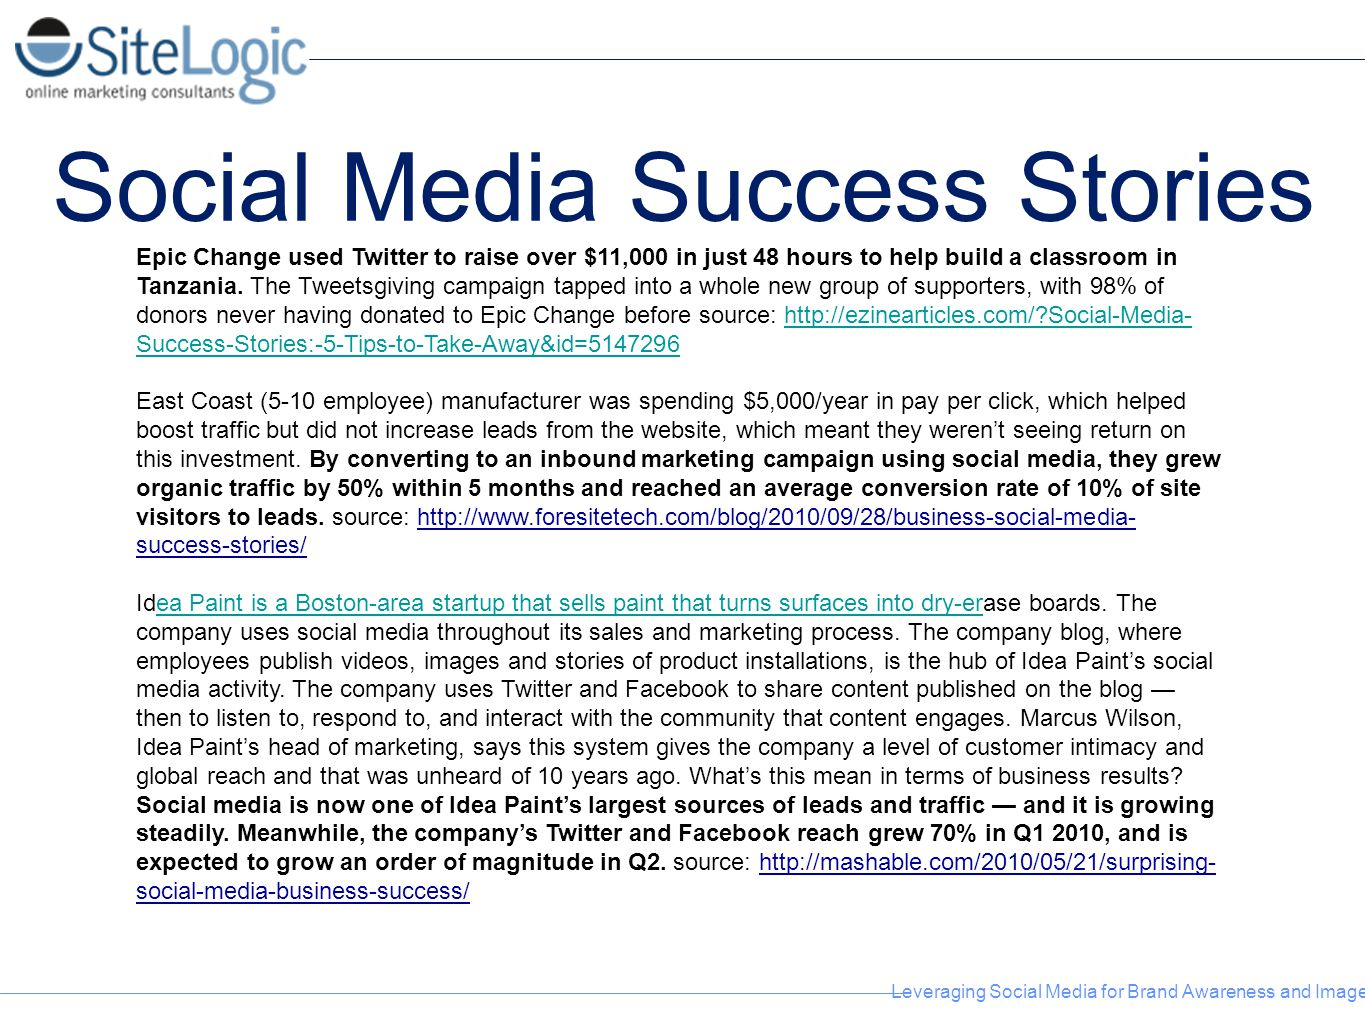 Leveraging Social Media for Brand Awareness and Image Social Media Success Stories Epic Change used Twitter to raise over $11,000 in just 48 hours to